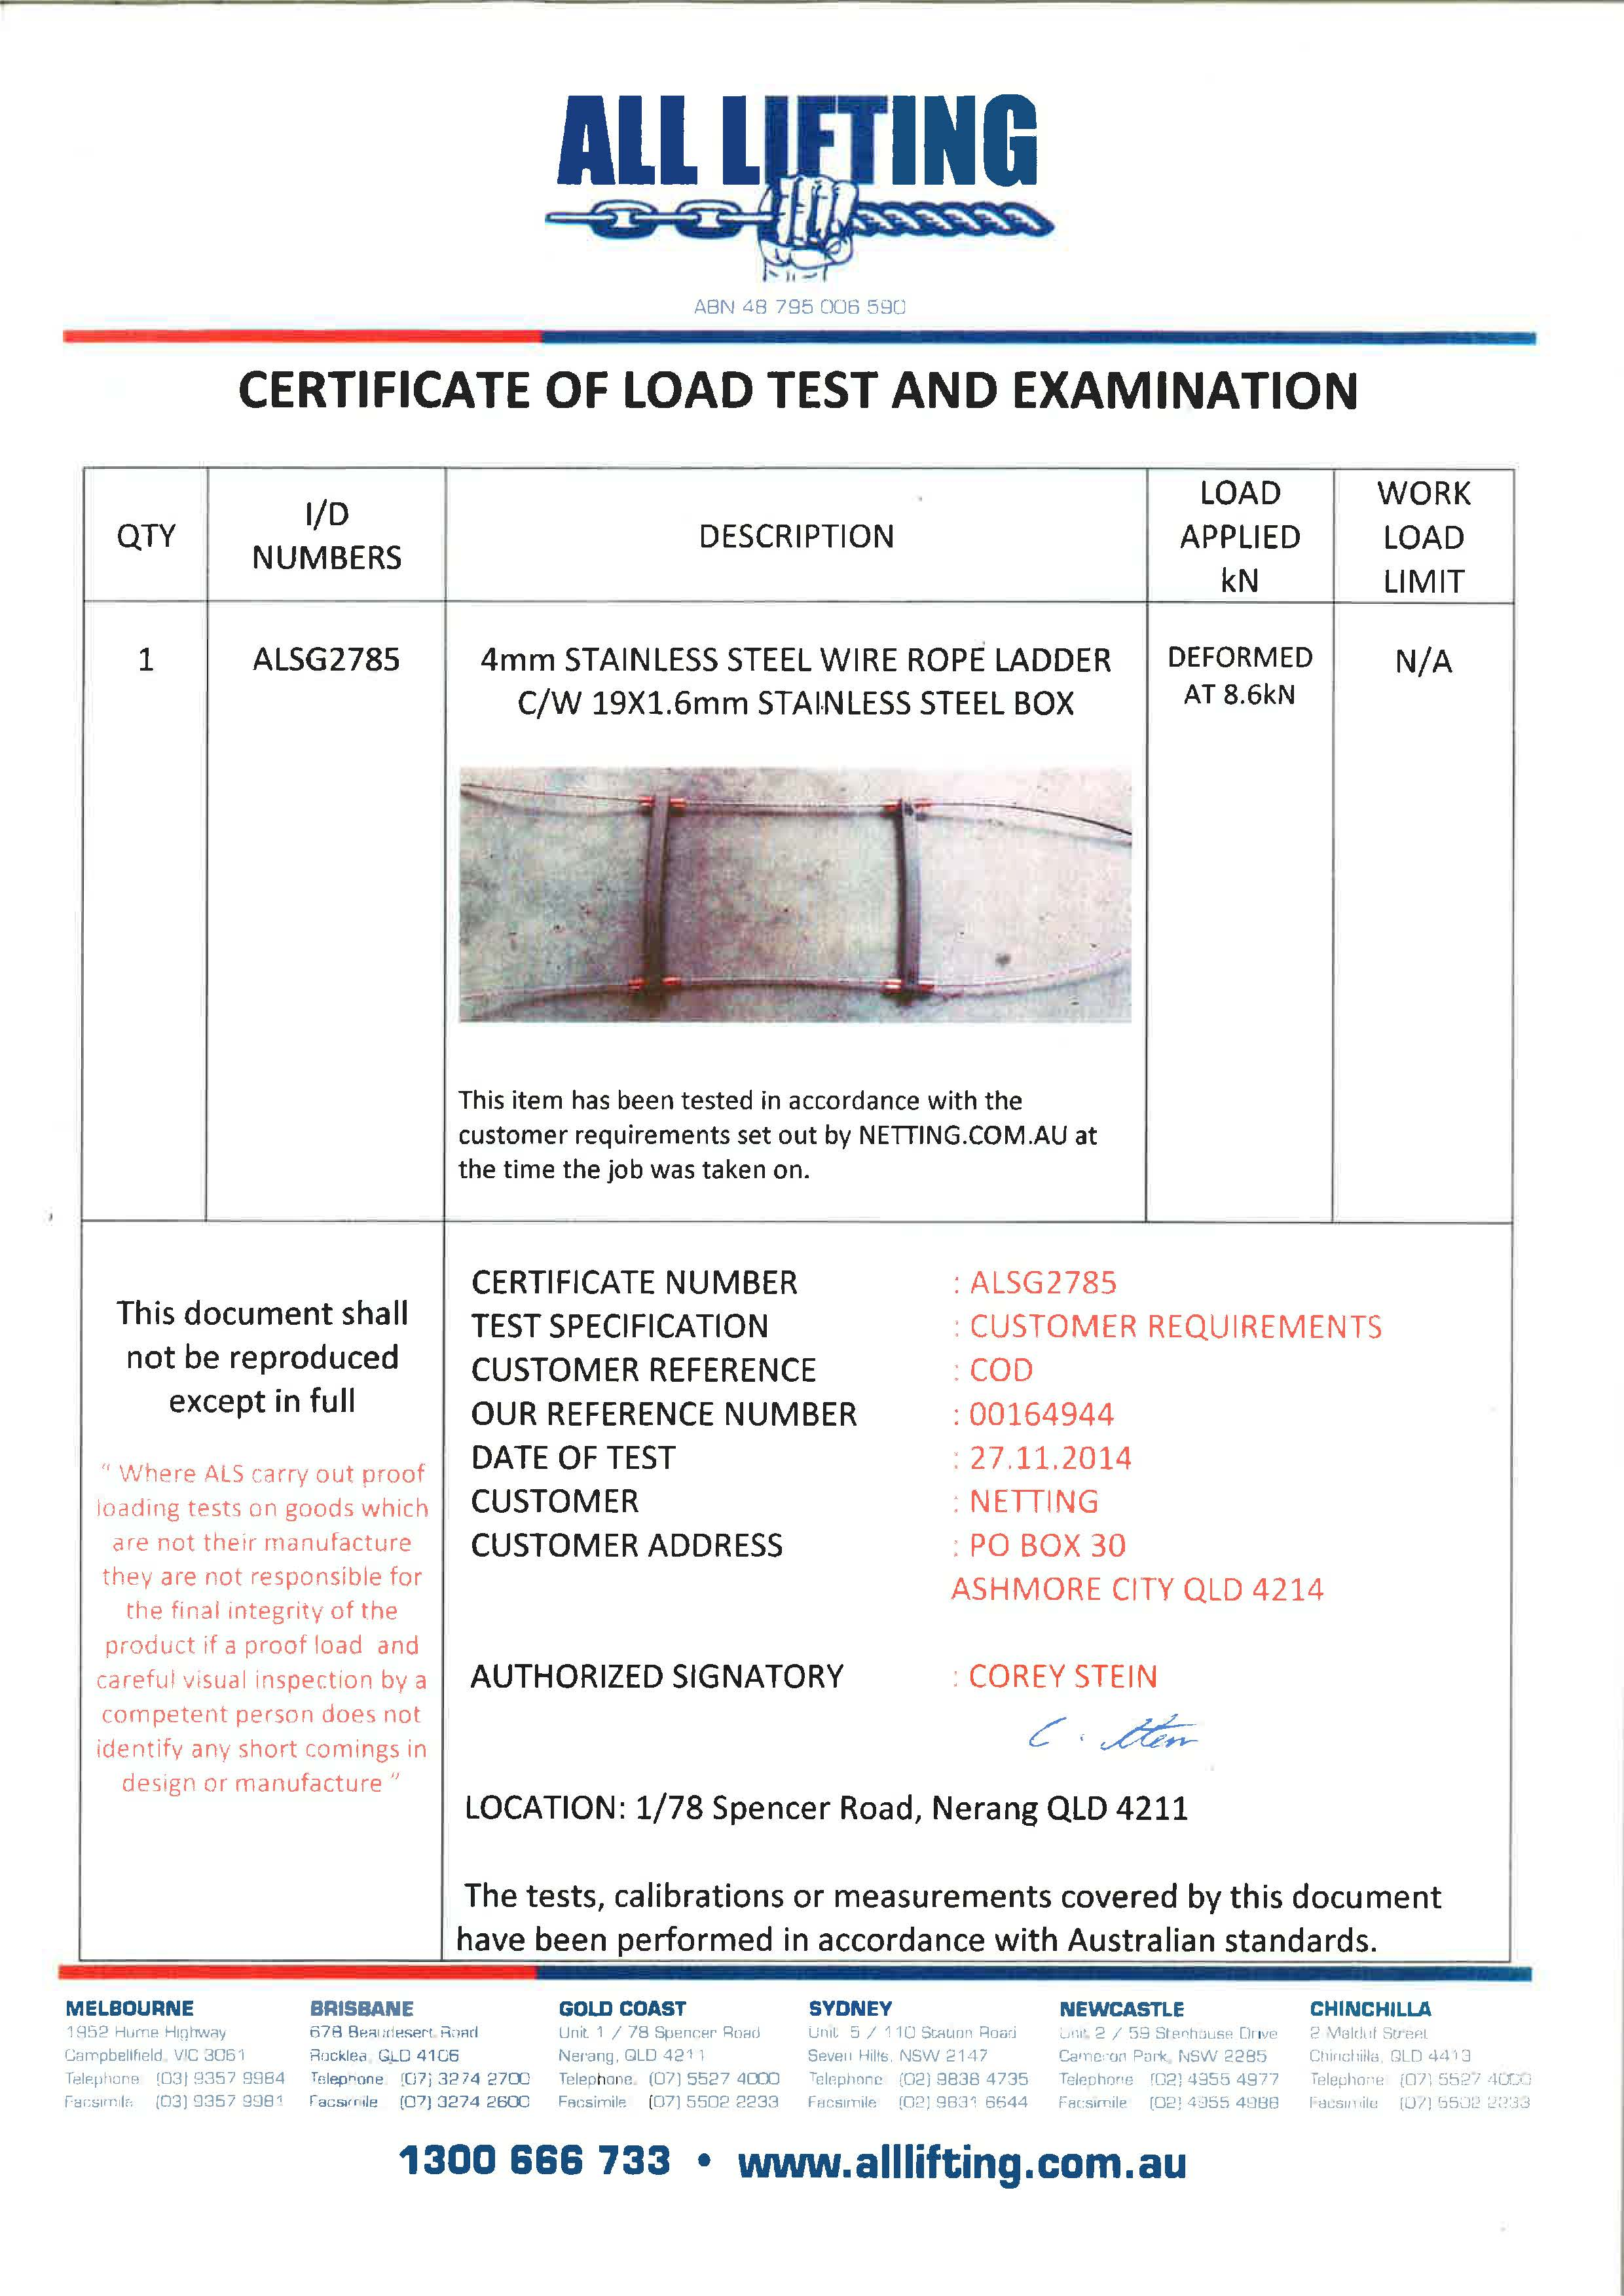 Stainless Steel Rope Ladder Certificate